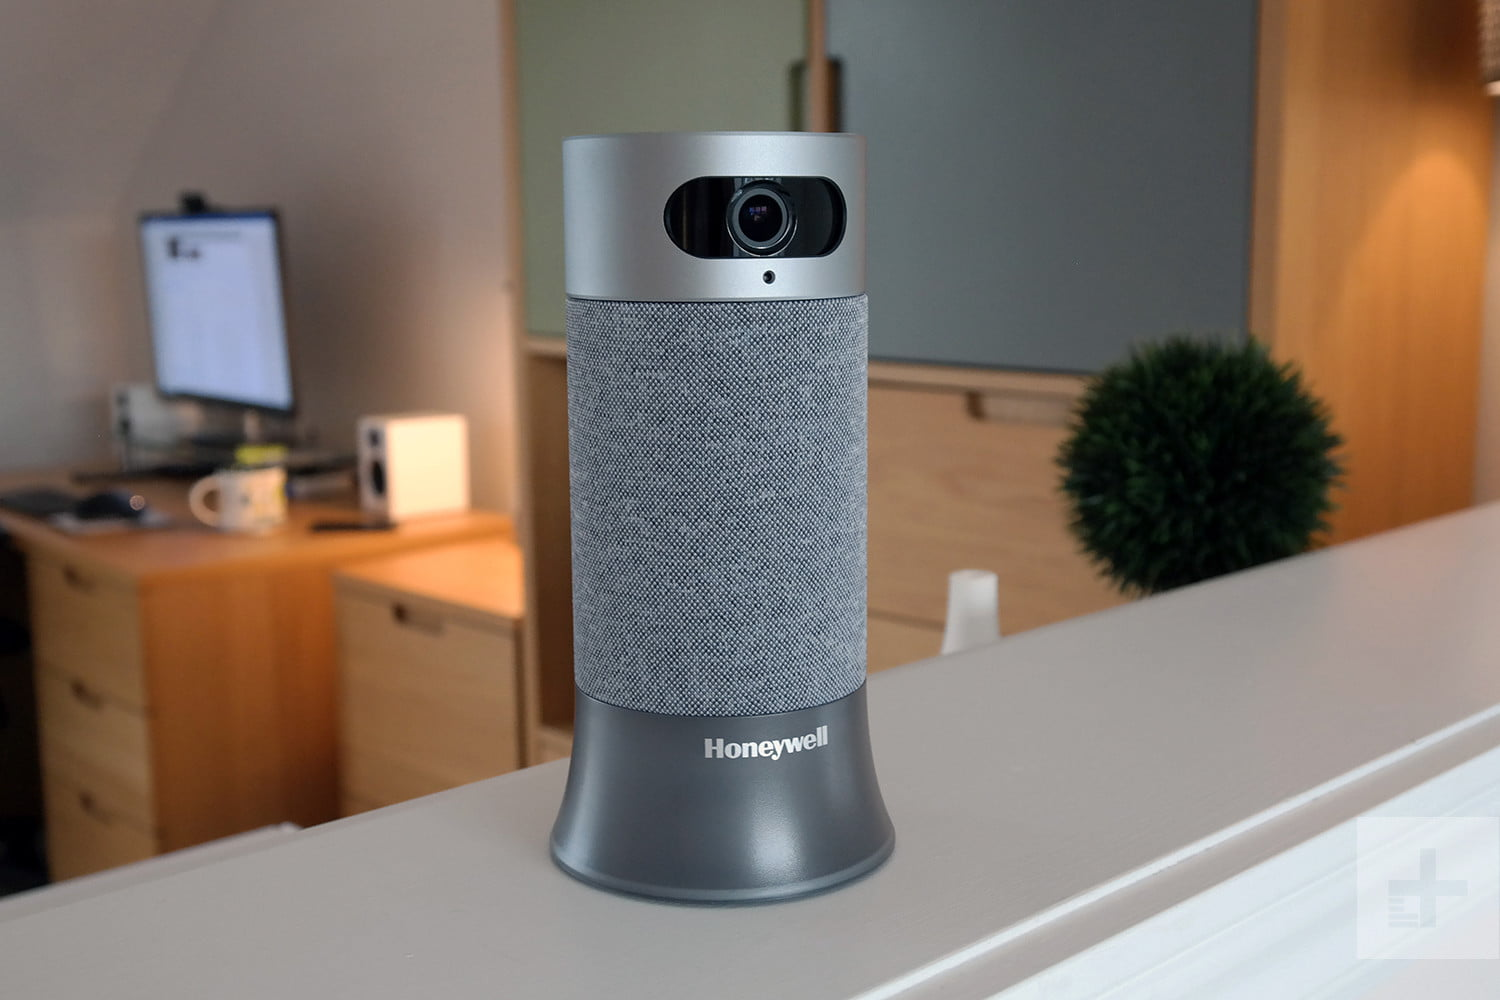 Honeywell Smart Home Security Starter Kit Review | Digital